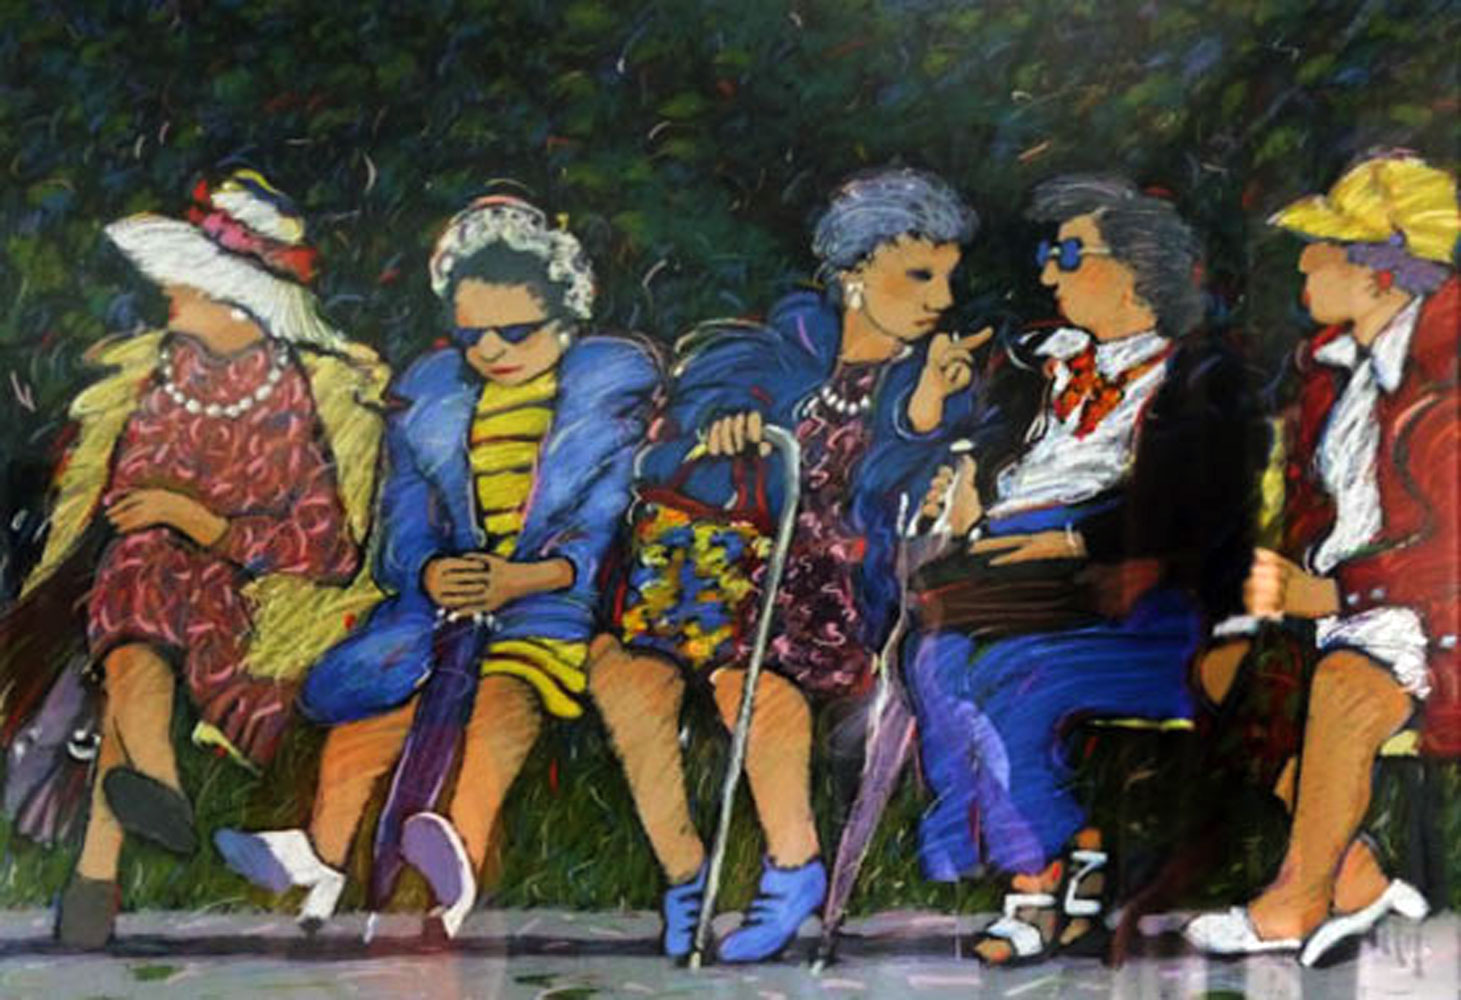 Old Ladies in the Park 1990